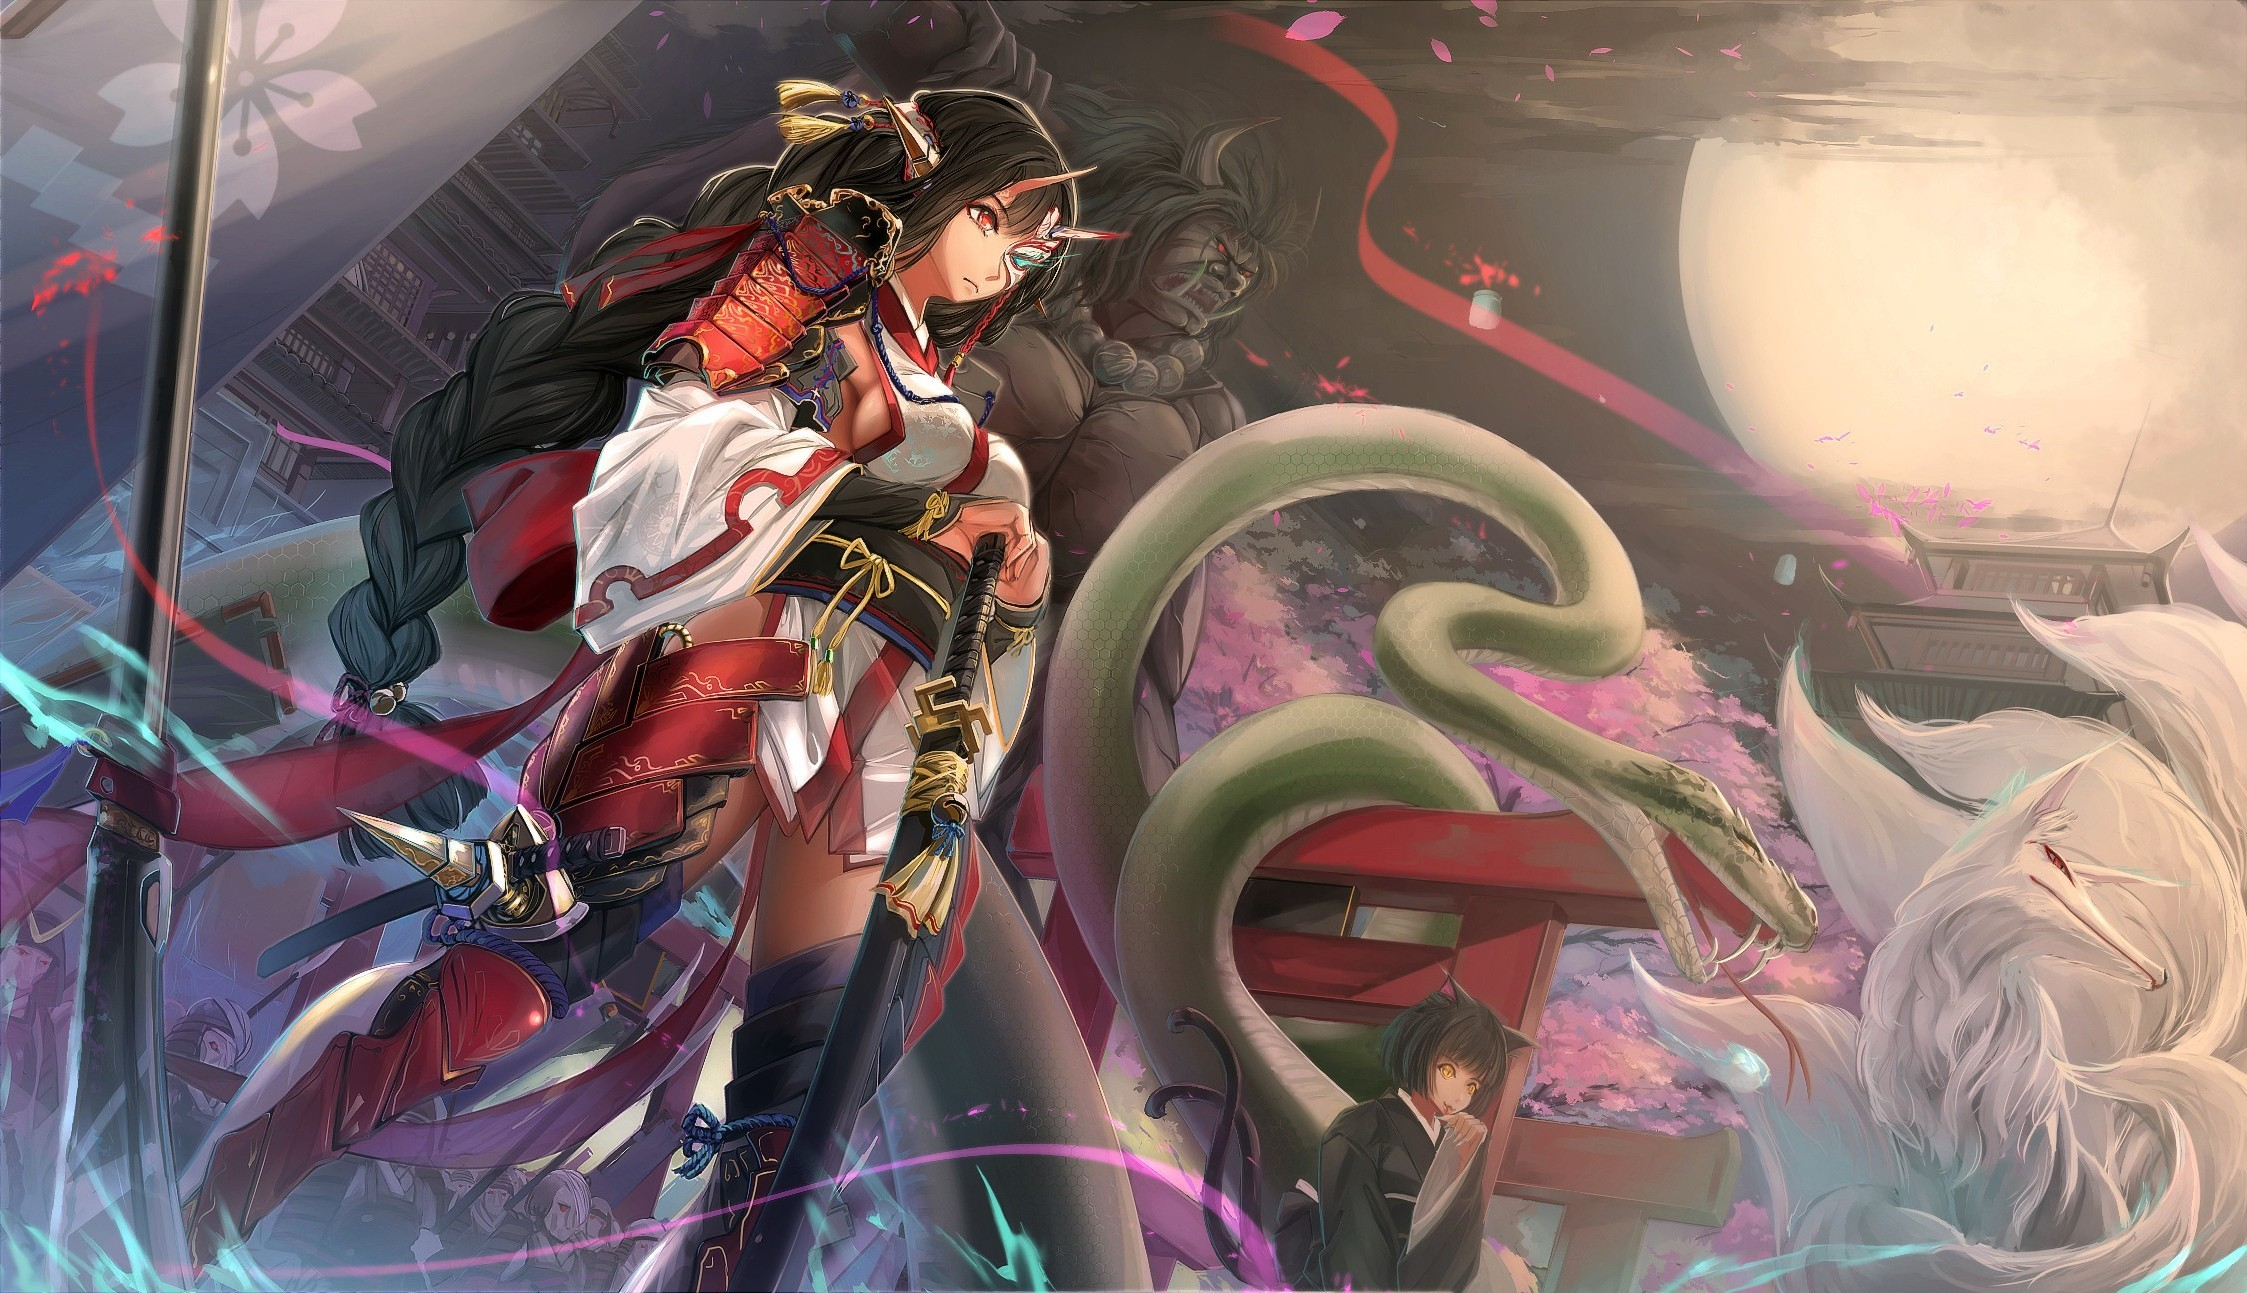 Anime Samurai Wallpaper 68 Pictures